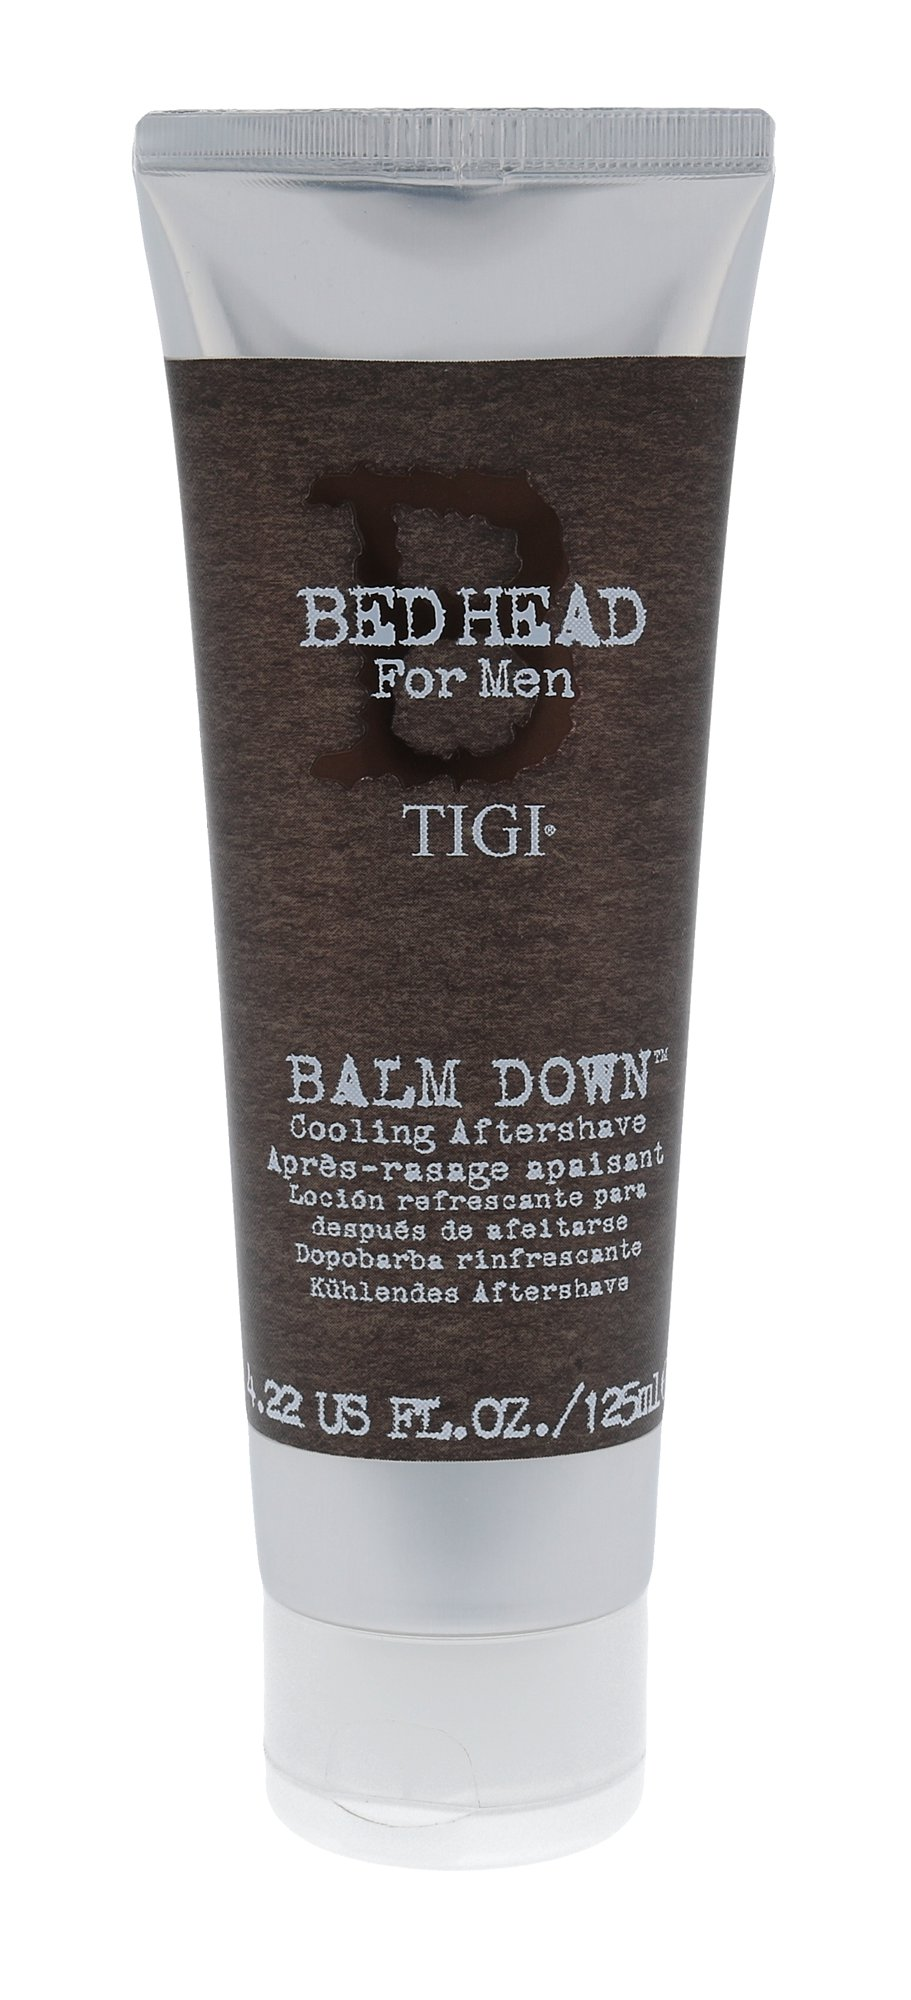 Tigi Bed Head Men Balm Down, After shave balm 125ml